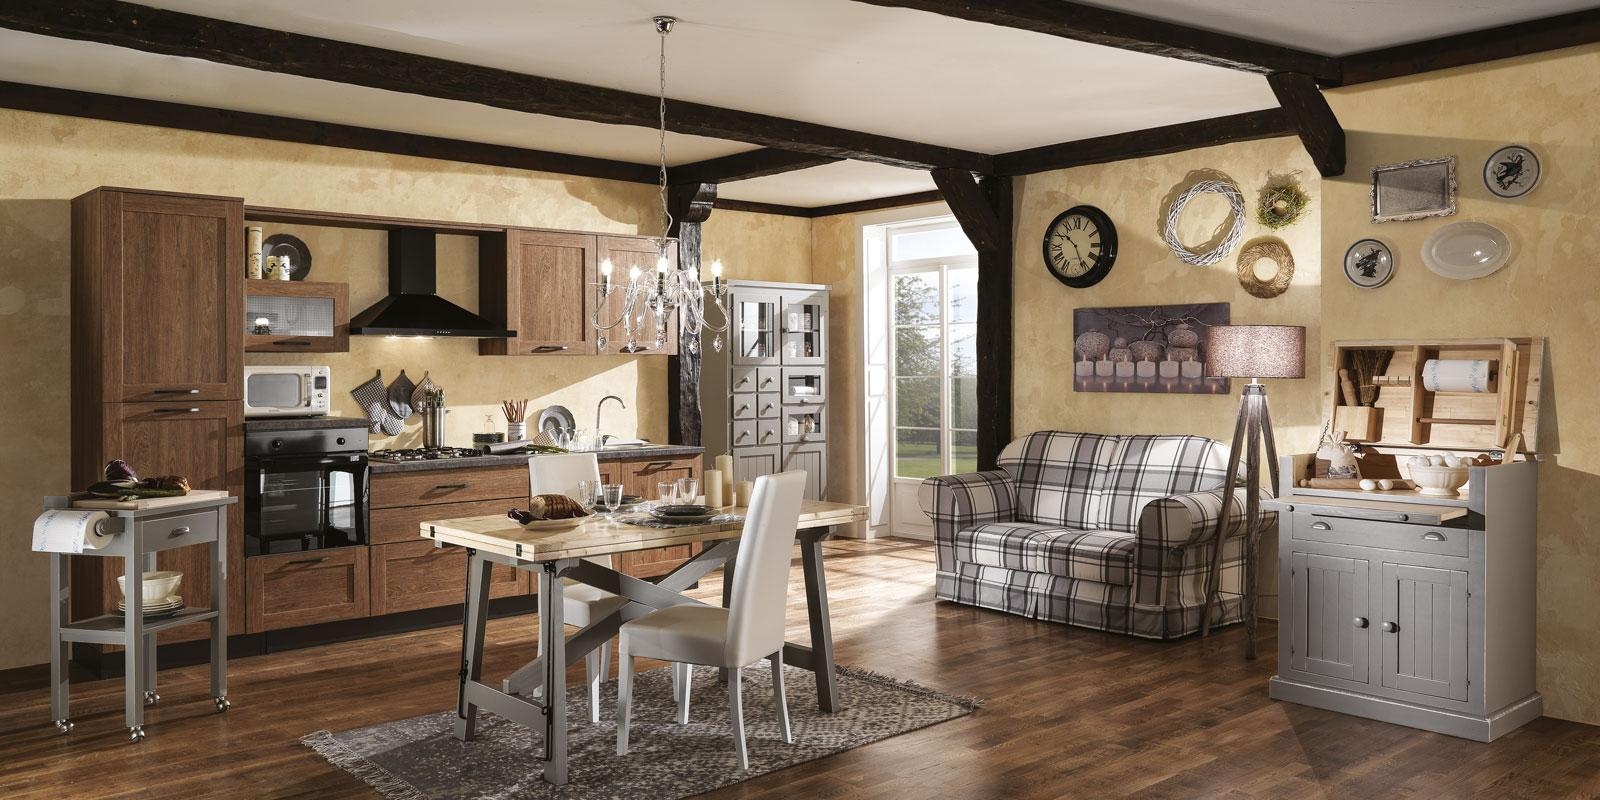 Casa in stile country protagonisti legno e materiali for Idee per arredare casa stile country